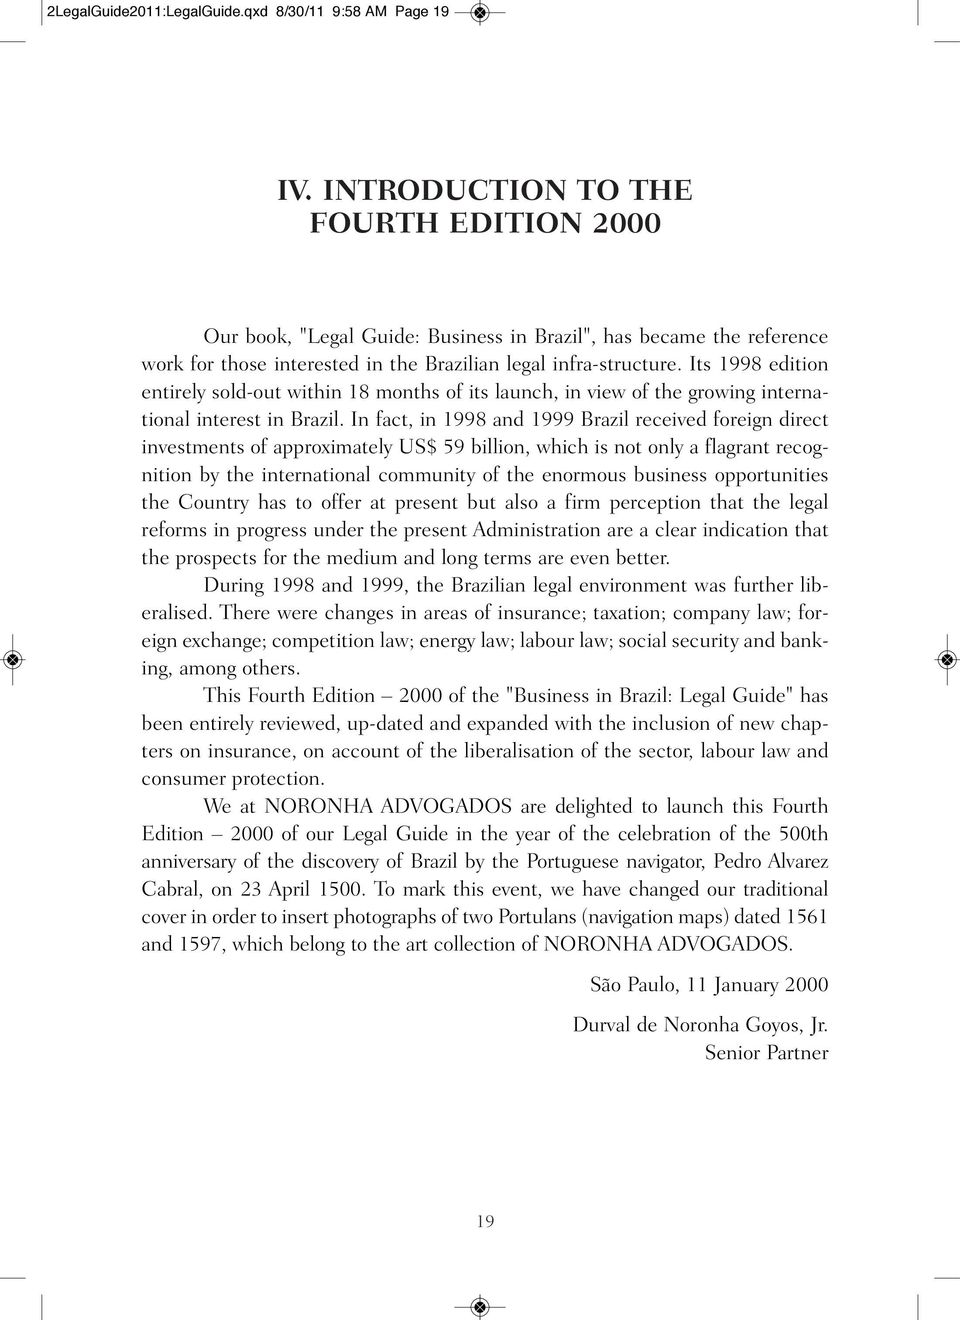 Its 1998 edition entirely sold-out within 18 months of its launch, in view of the growing international interest in Brazil.